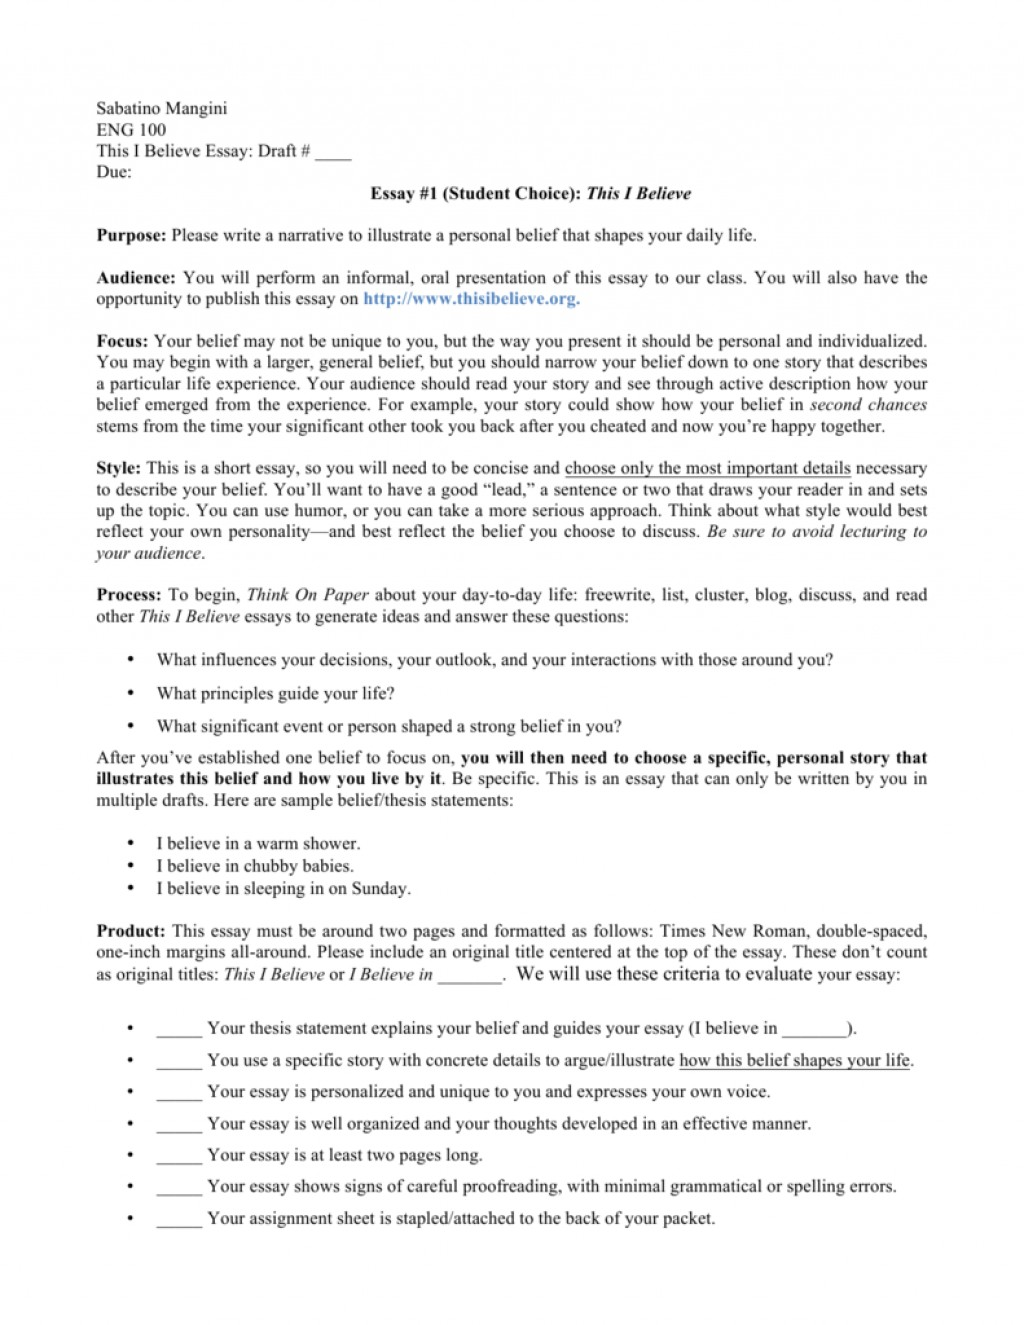 008 This I Believe Essays 008807227 1 Stupendous Essay Examples Personal College Large